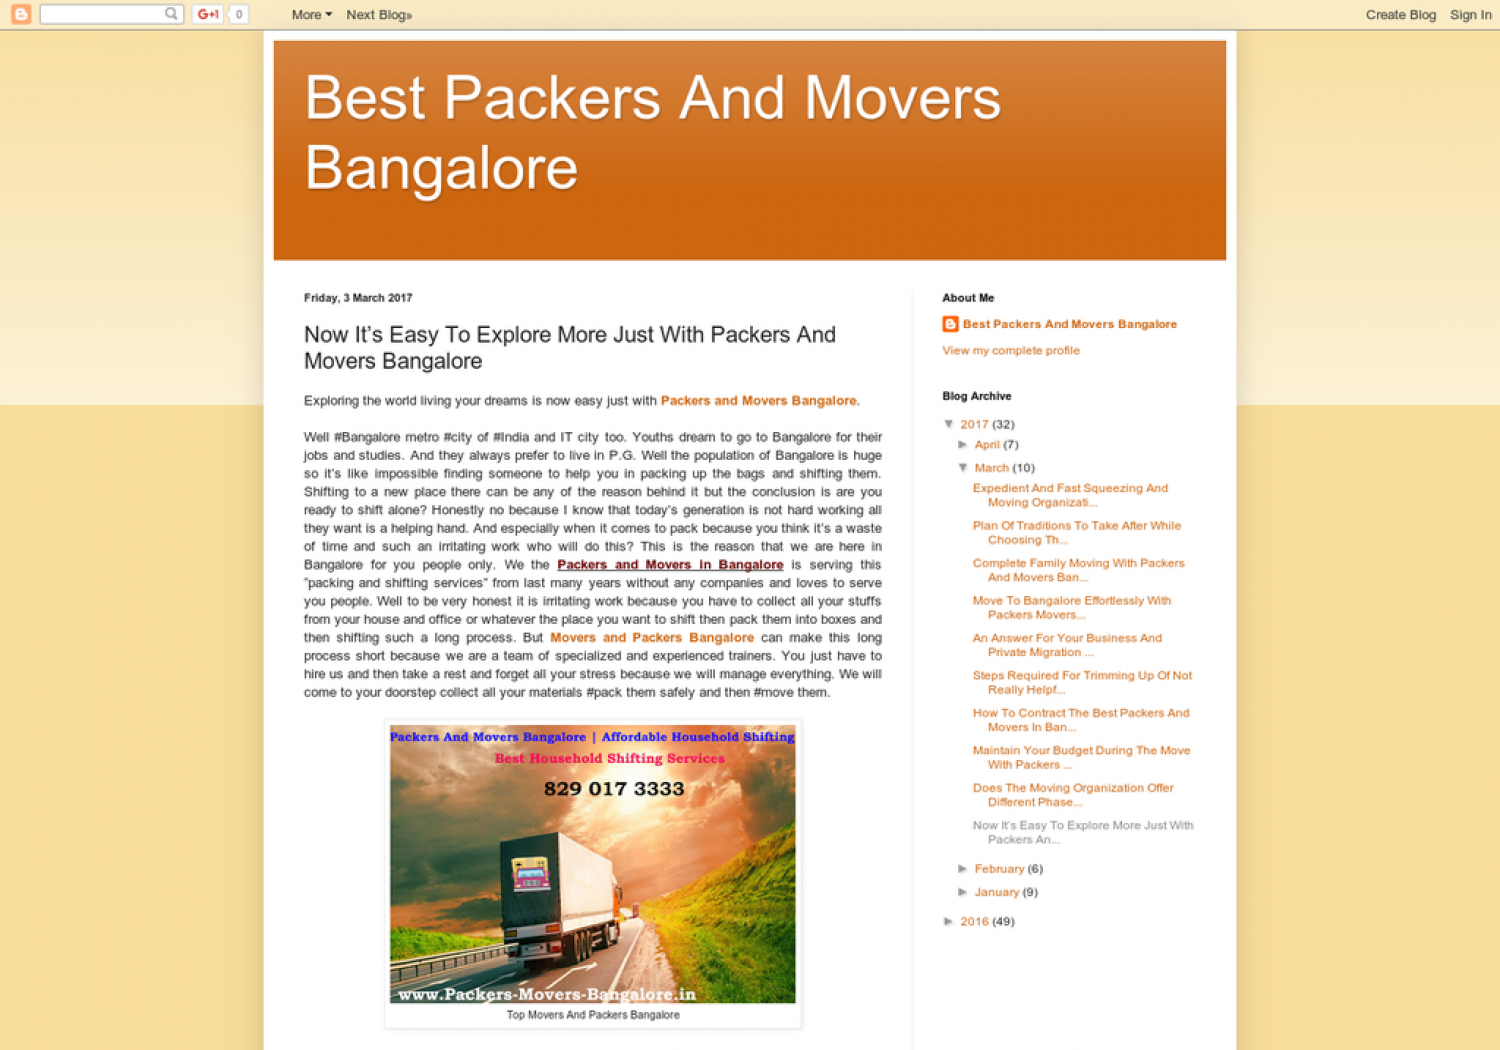 Now It's Easy To Explore More Just With Packers And Movers Bangalore Infographic